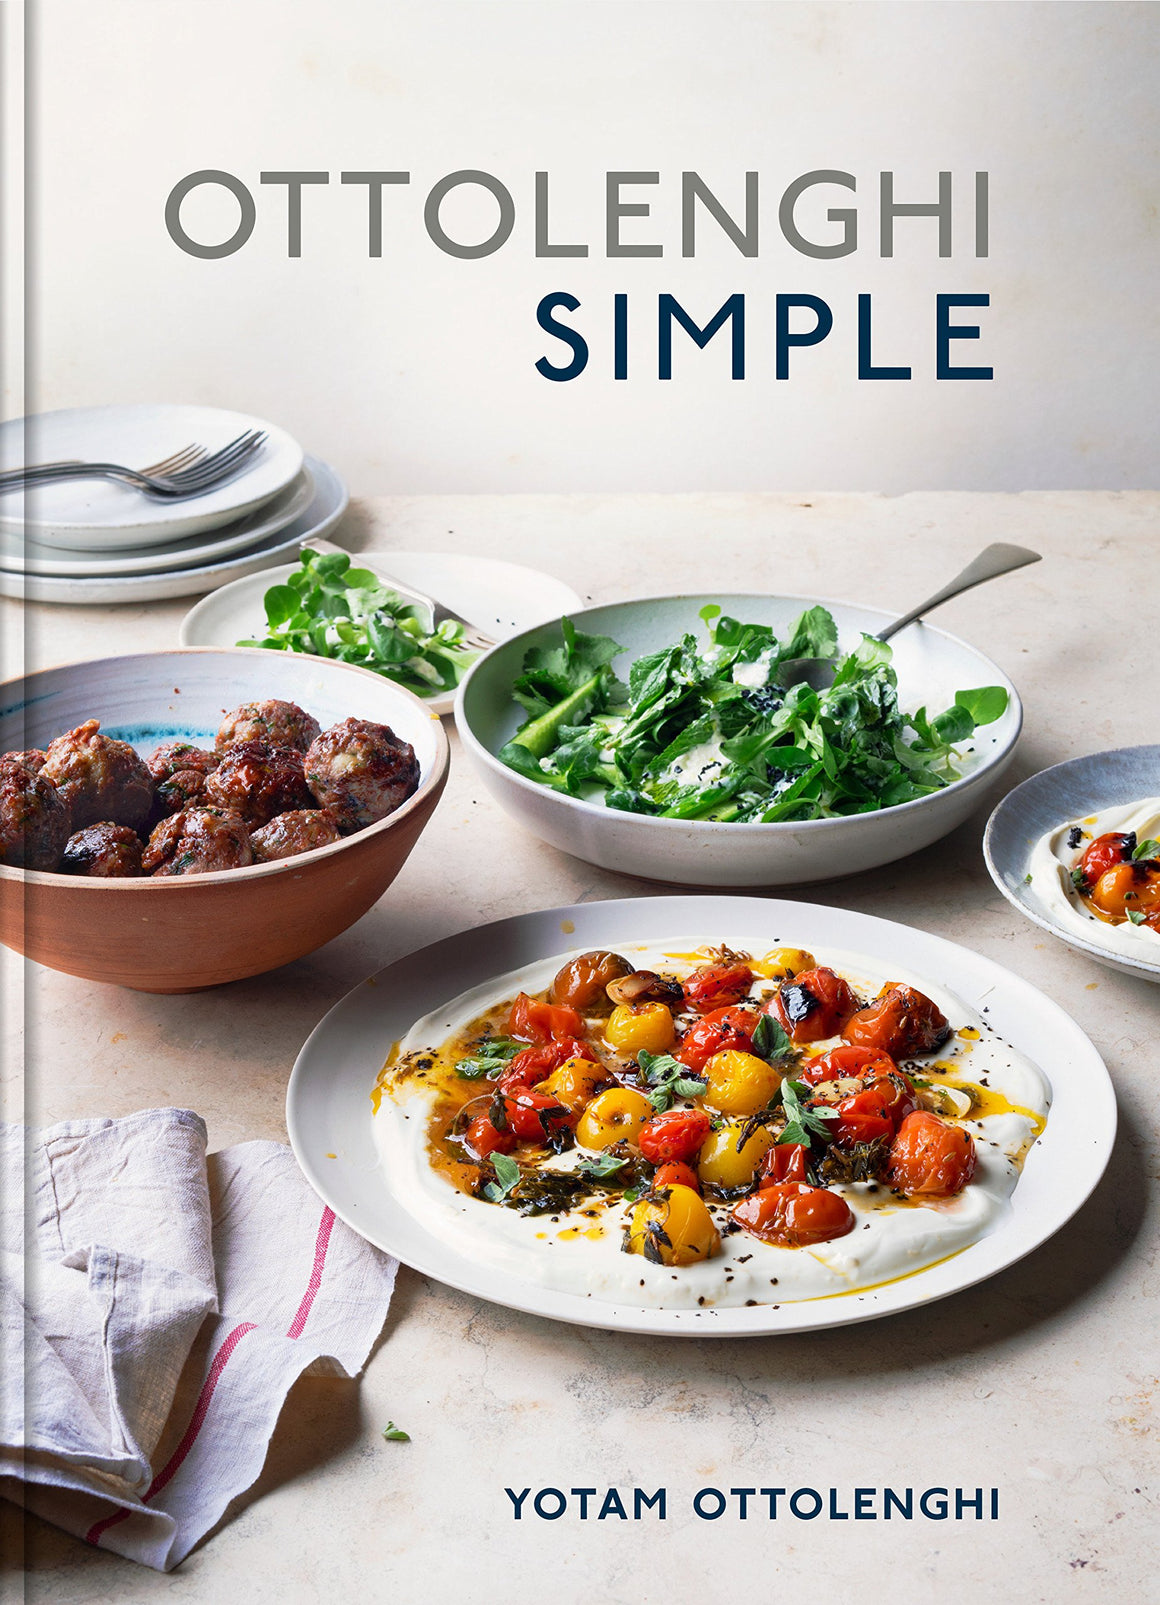 Yotam Ottolenghi . Ottolenghi Simple: A Cookbook.